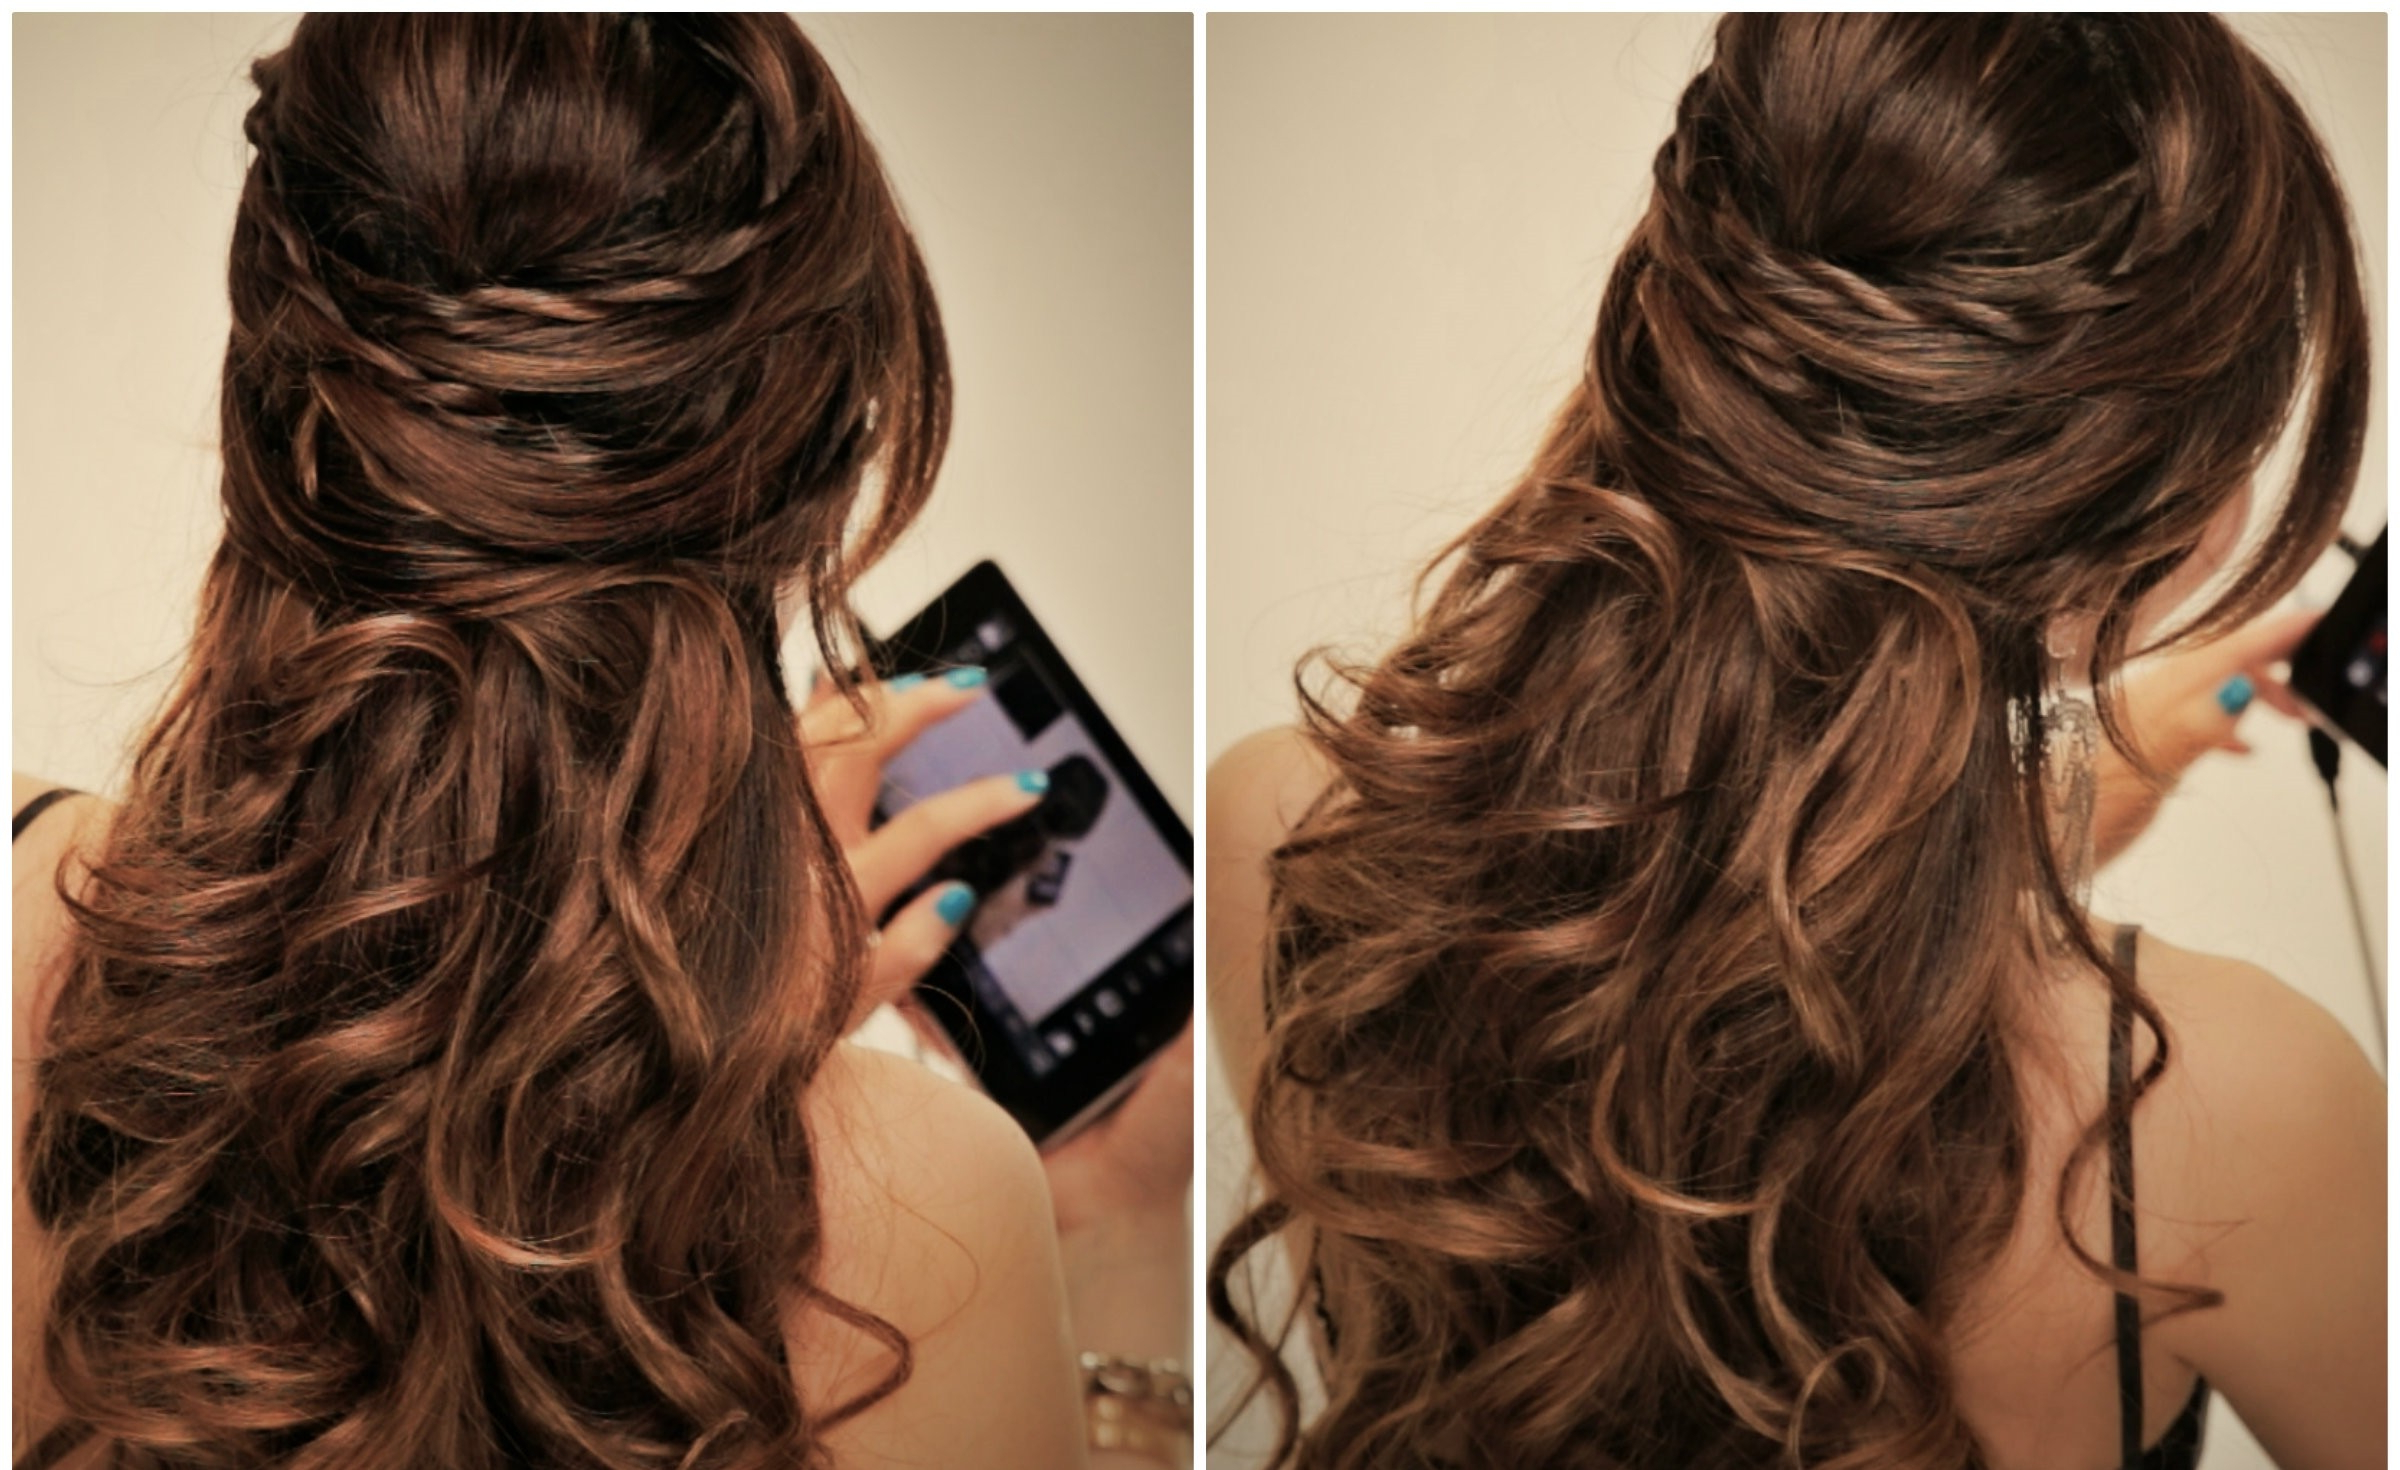 Sophie Hairstyles – 8183 Pertaining To Popular Sleek And Simple Wedding Hairstyles (View 14 of 20)